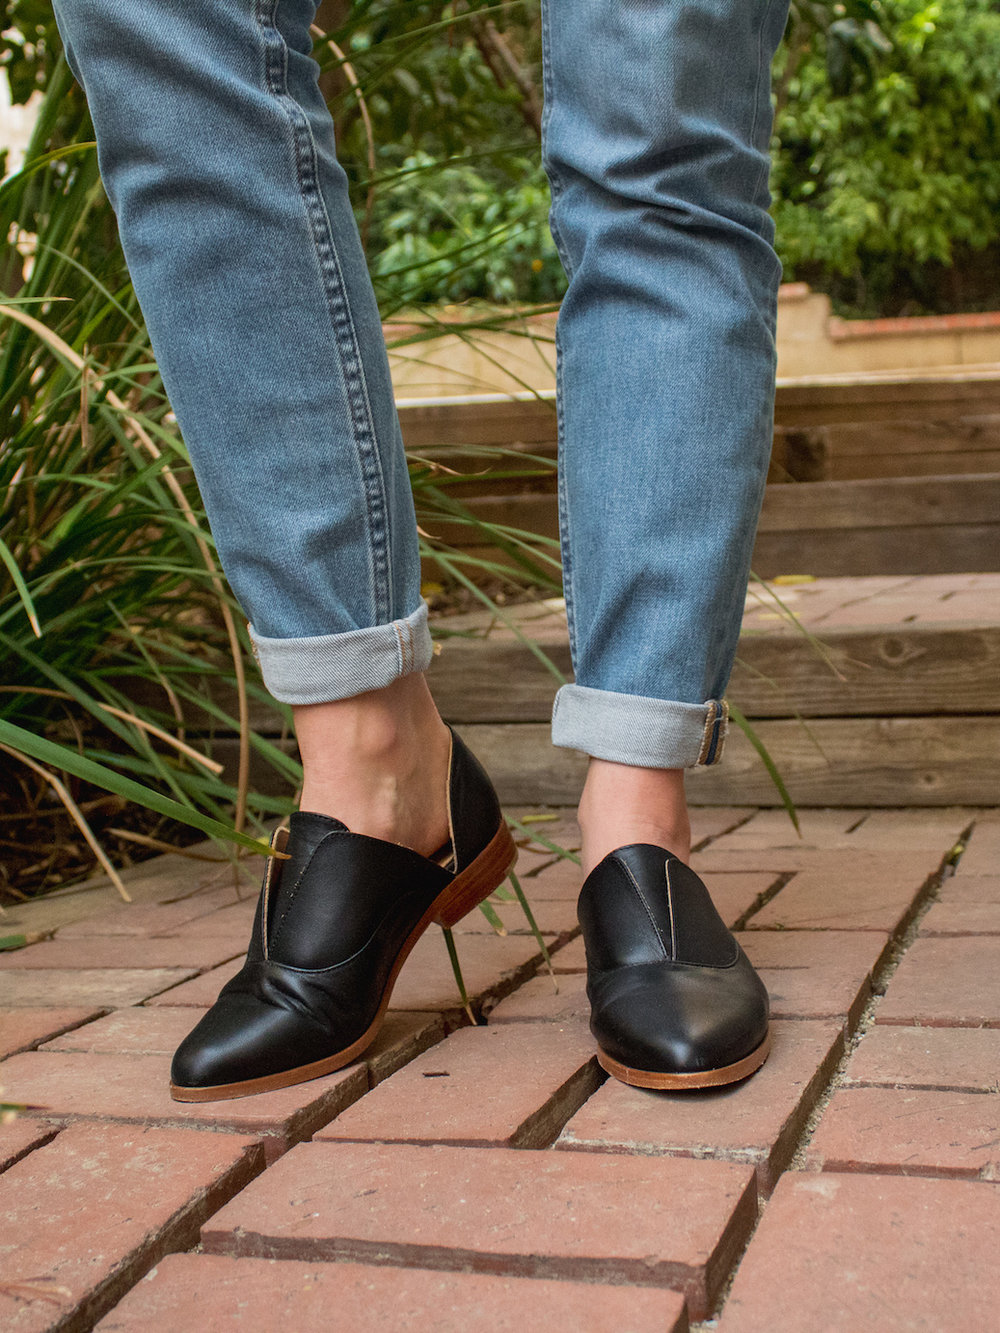 Review Of Nisolo's Emma D'Orsay Oxfords on The Good Trade